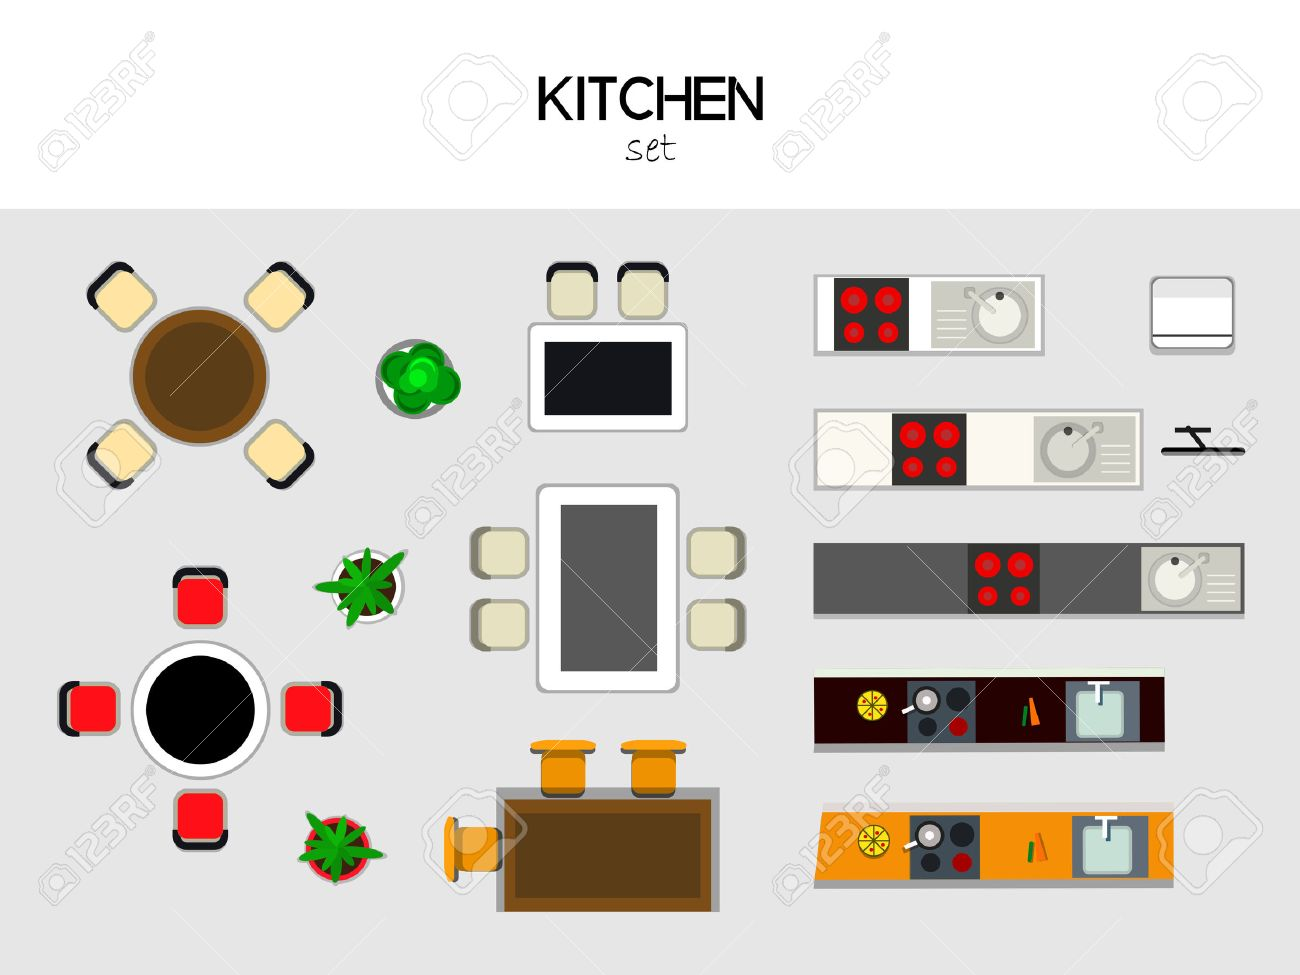 Table and chairs top view - Set Of Furniture For The Kithen Top View Table With Chairs Kitchen With